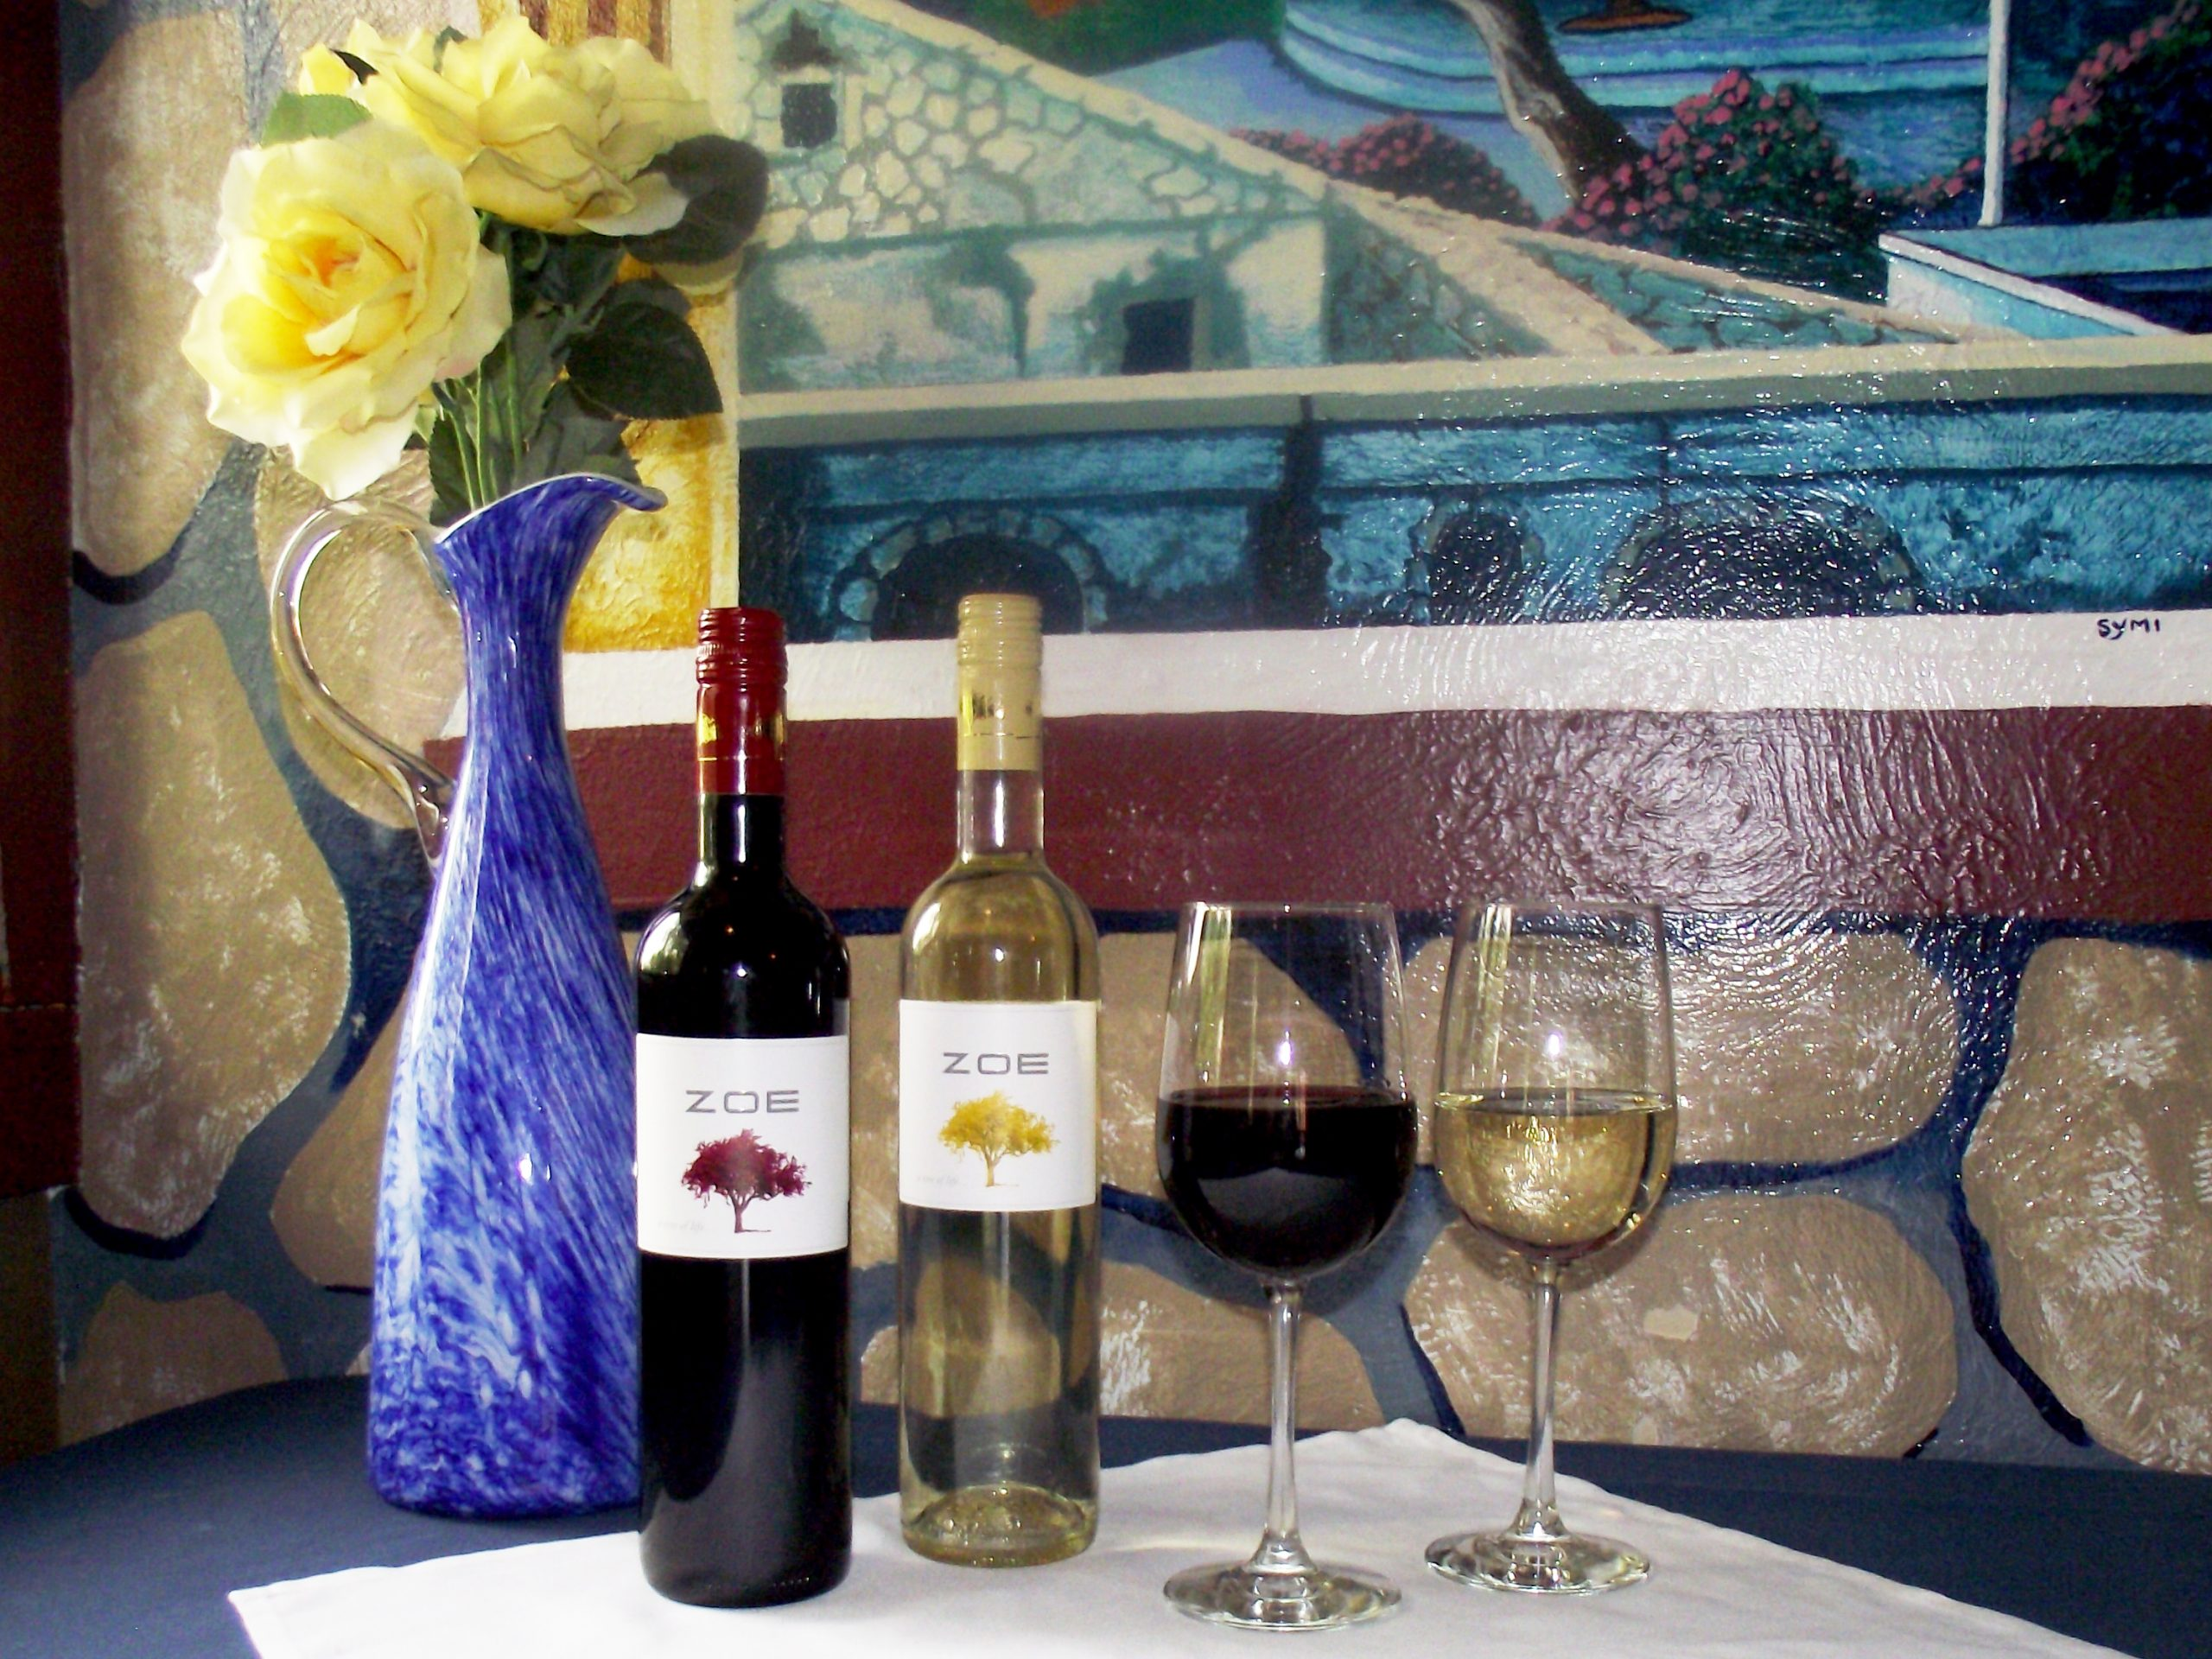 ZOE Red and White wines with a glass of each